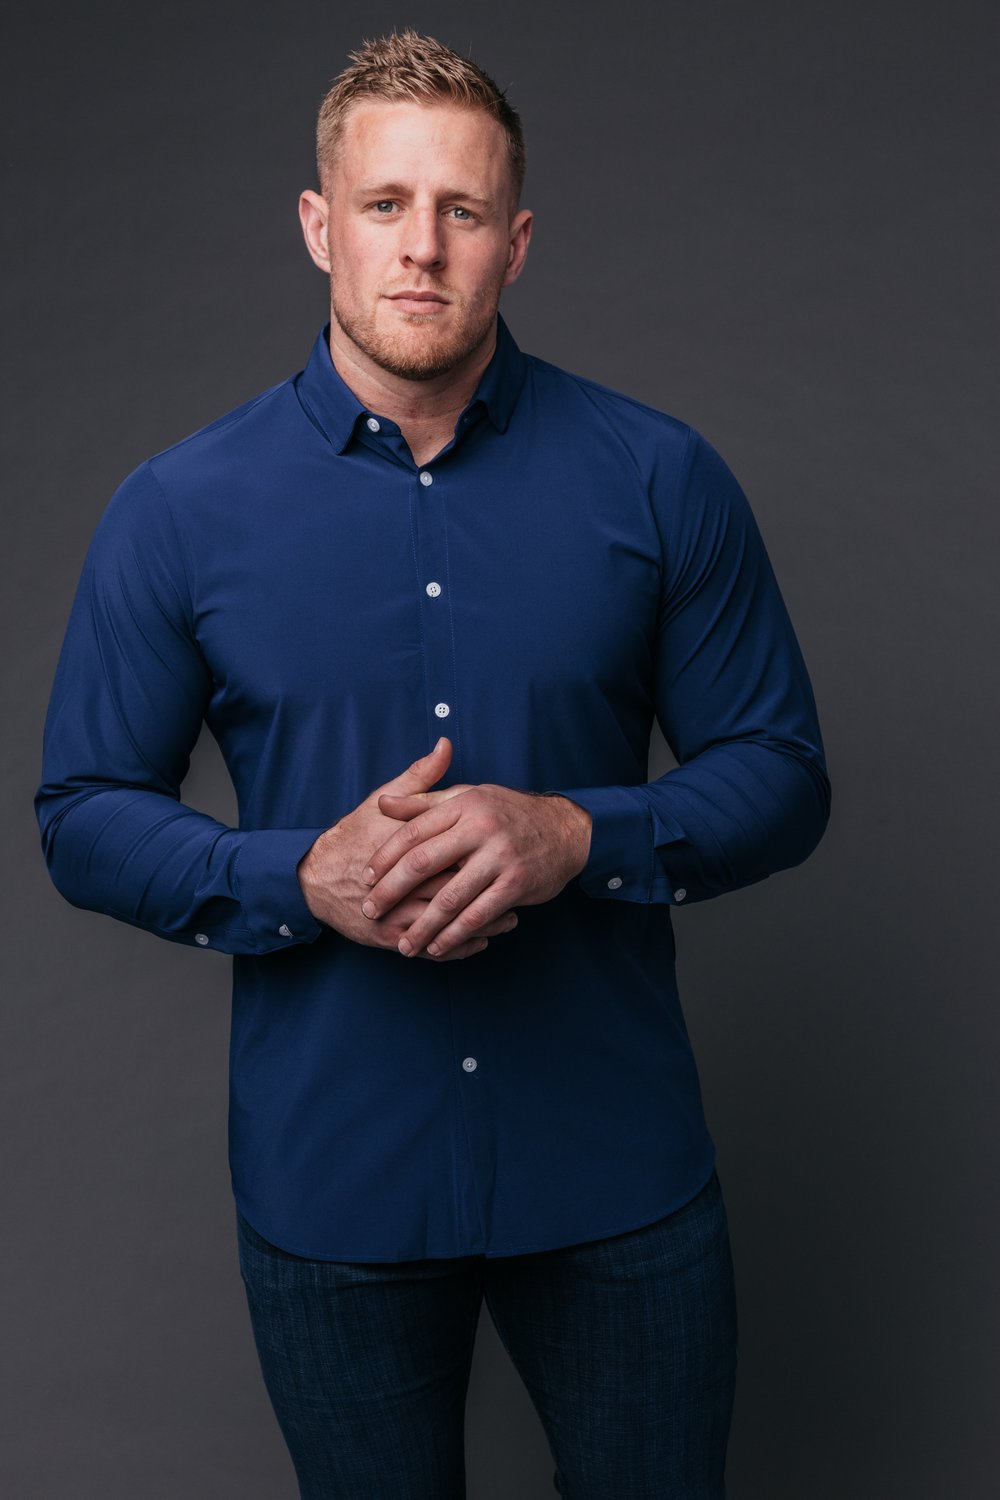 J.J. Watt Collection for Mizzen + Main